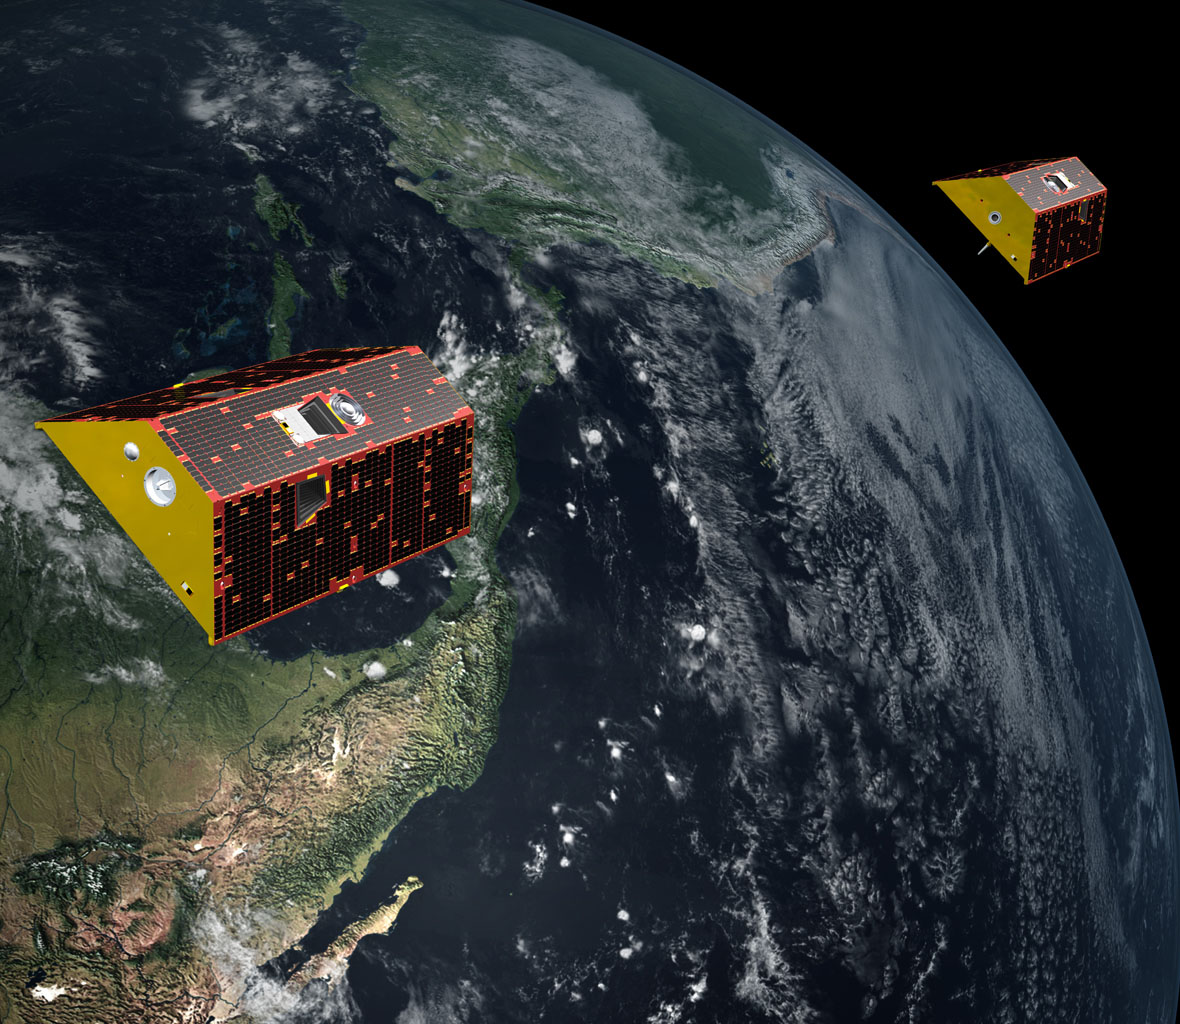 Illustration of the twin spacecraft of the NASA/German Research Centre for Geosciences (GFZ) GRACE-FO mission. GRACE-FO will continue tracking the evolution of Earth's water cycle by monitoring changes in the distribution of mass on Earth.